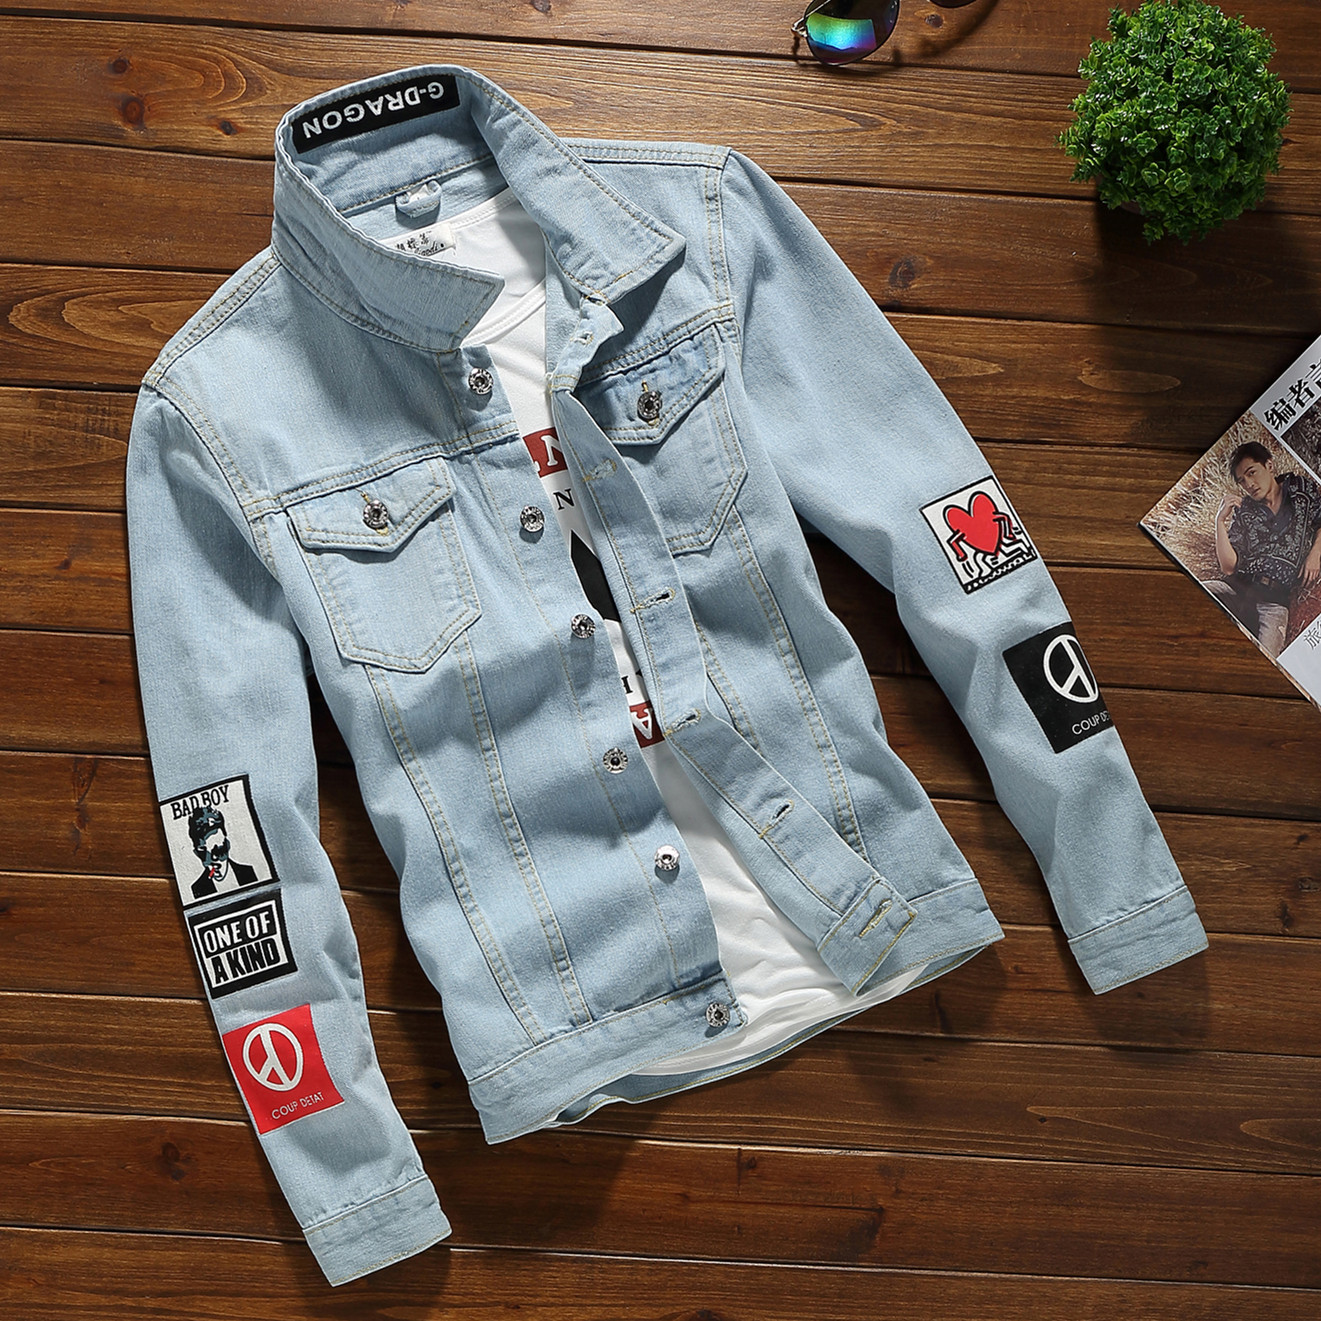 Fashion cowboy jacket youth old personalized jacket this years new trend jacket young people wear mens clothes